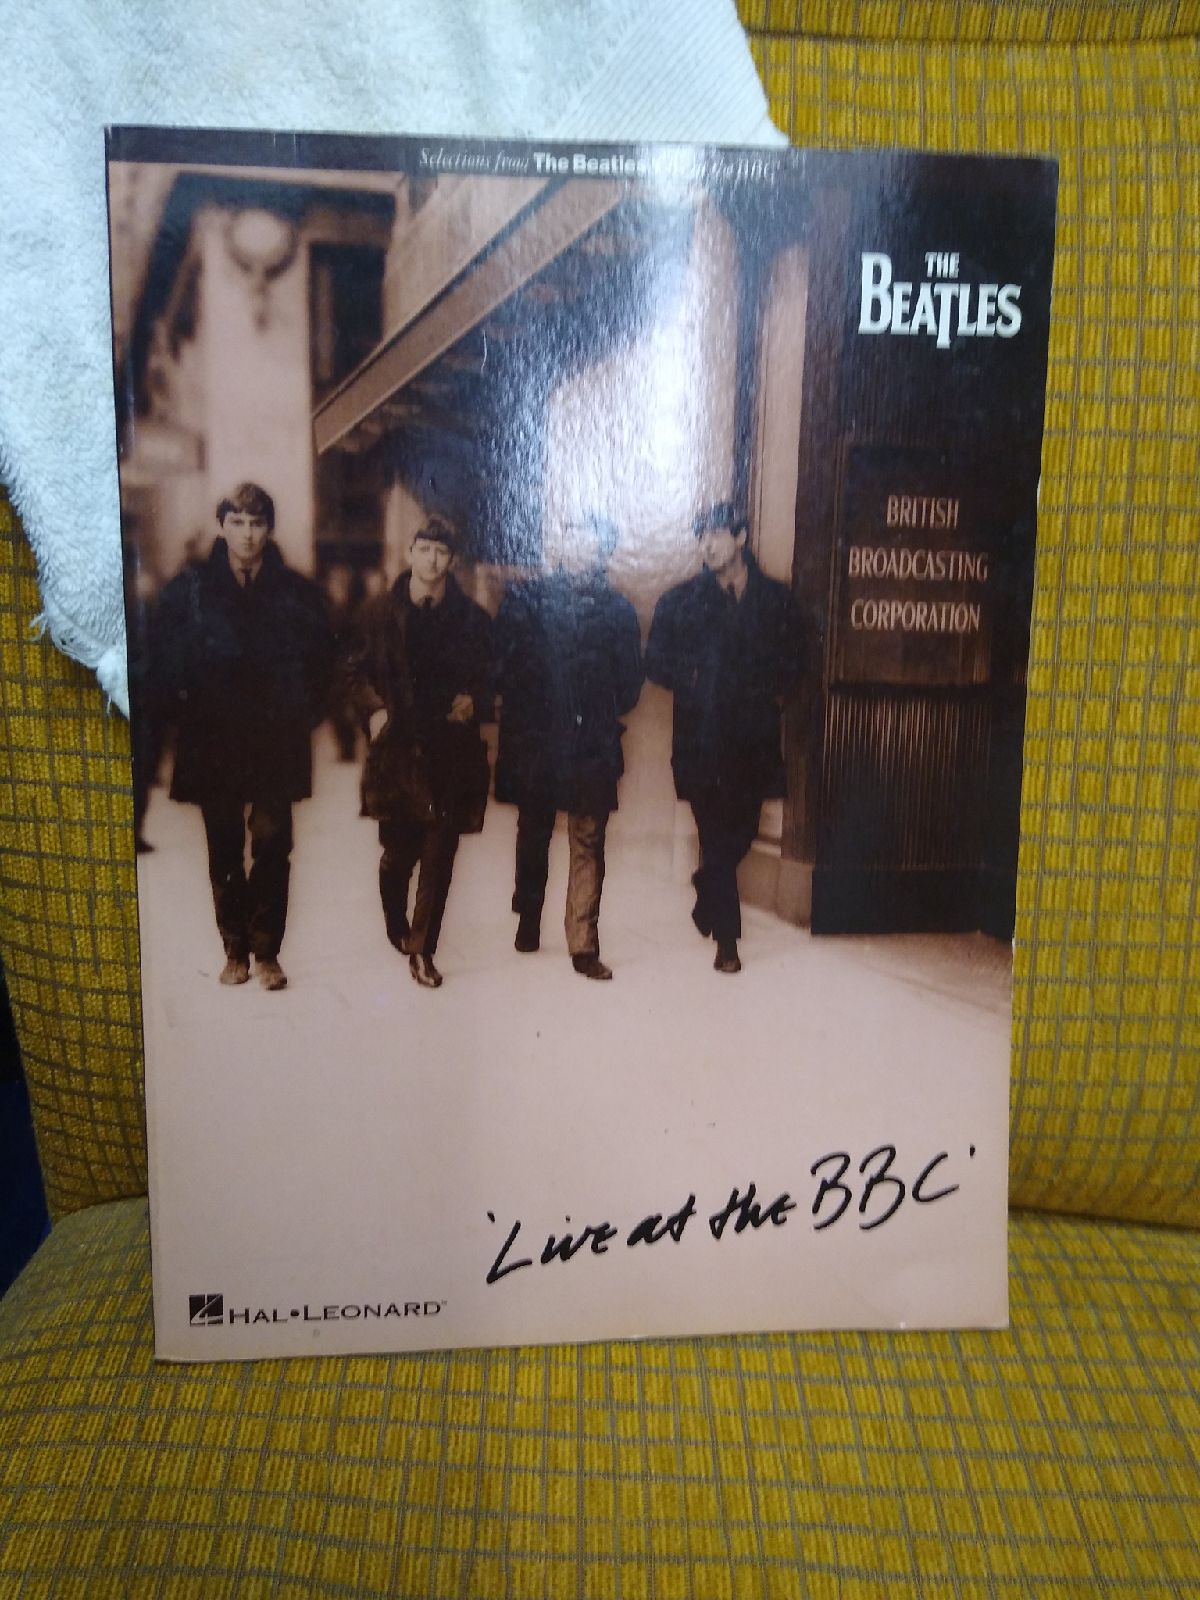 The beatles live at the bbc music book